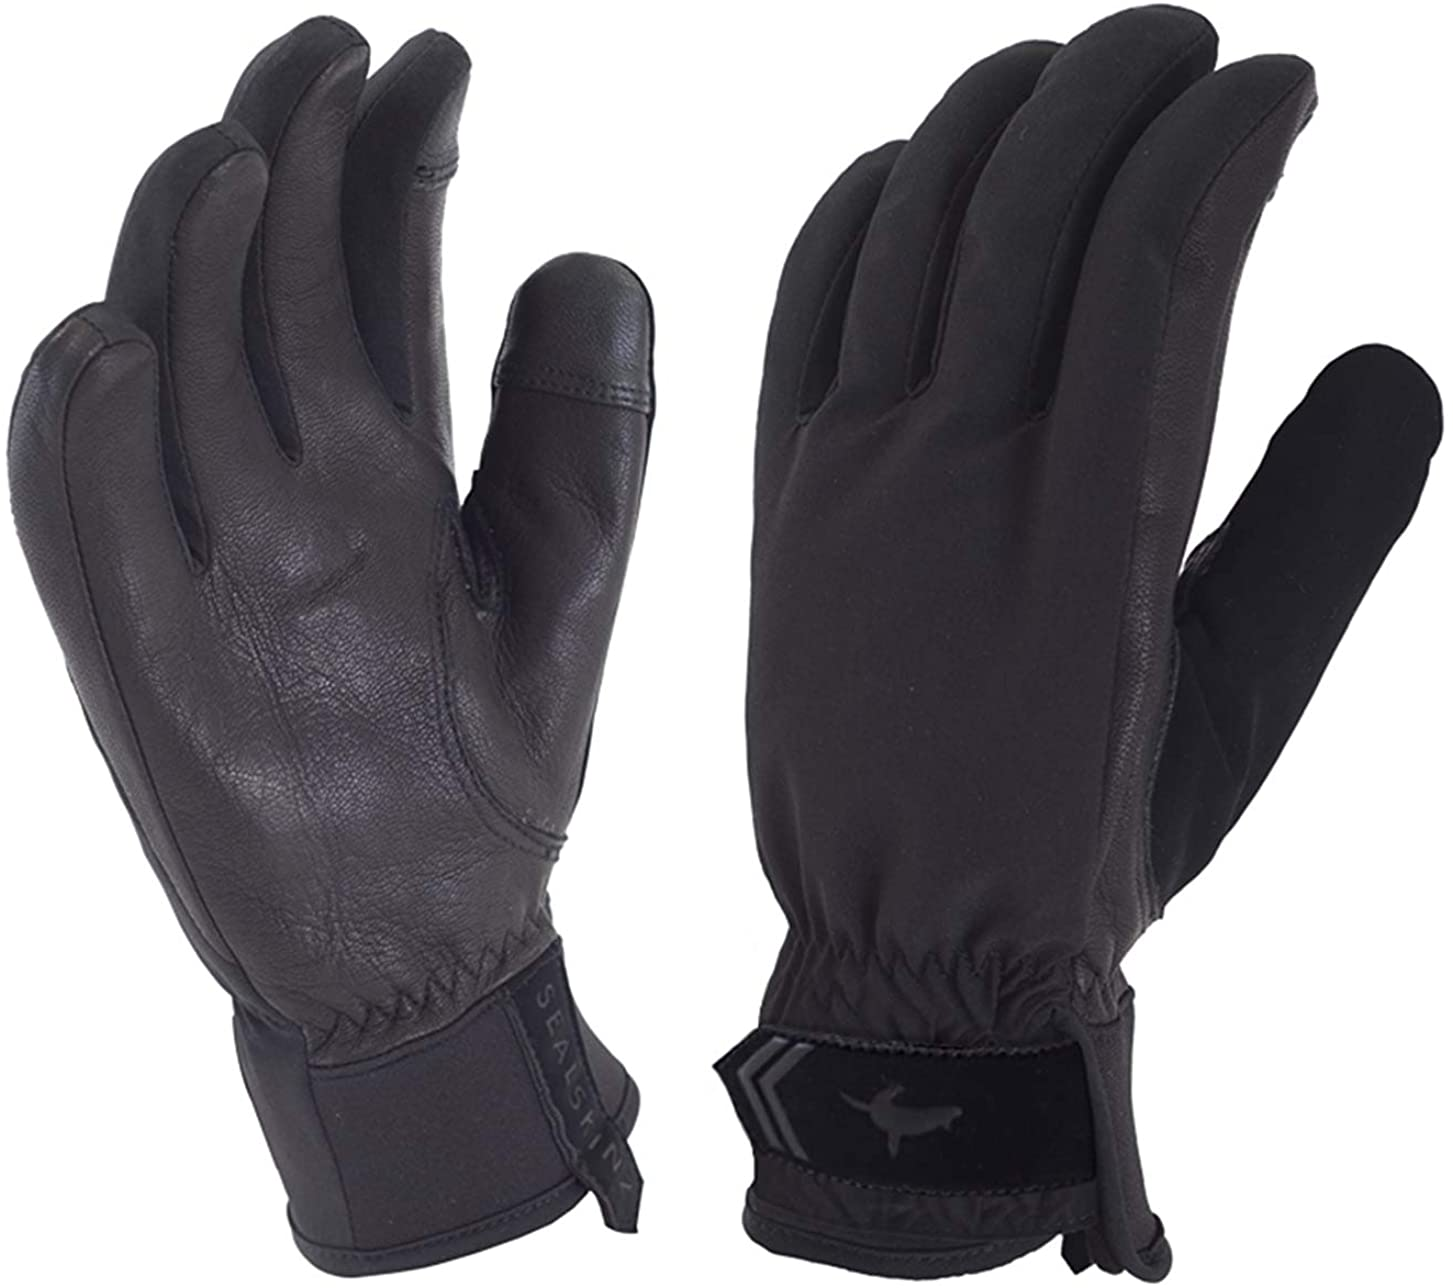 SealSkinz Unisex Waterproof Glove